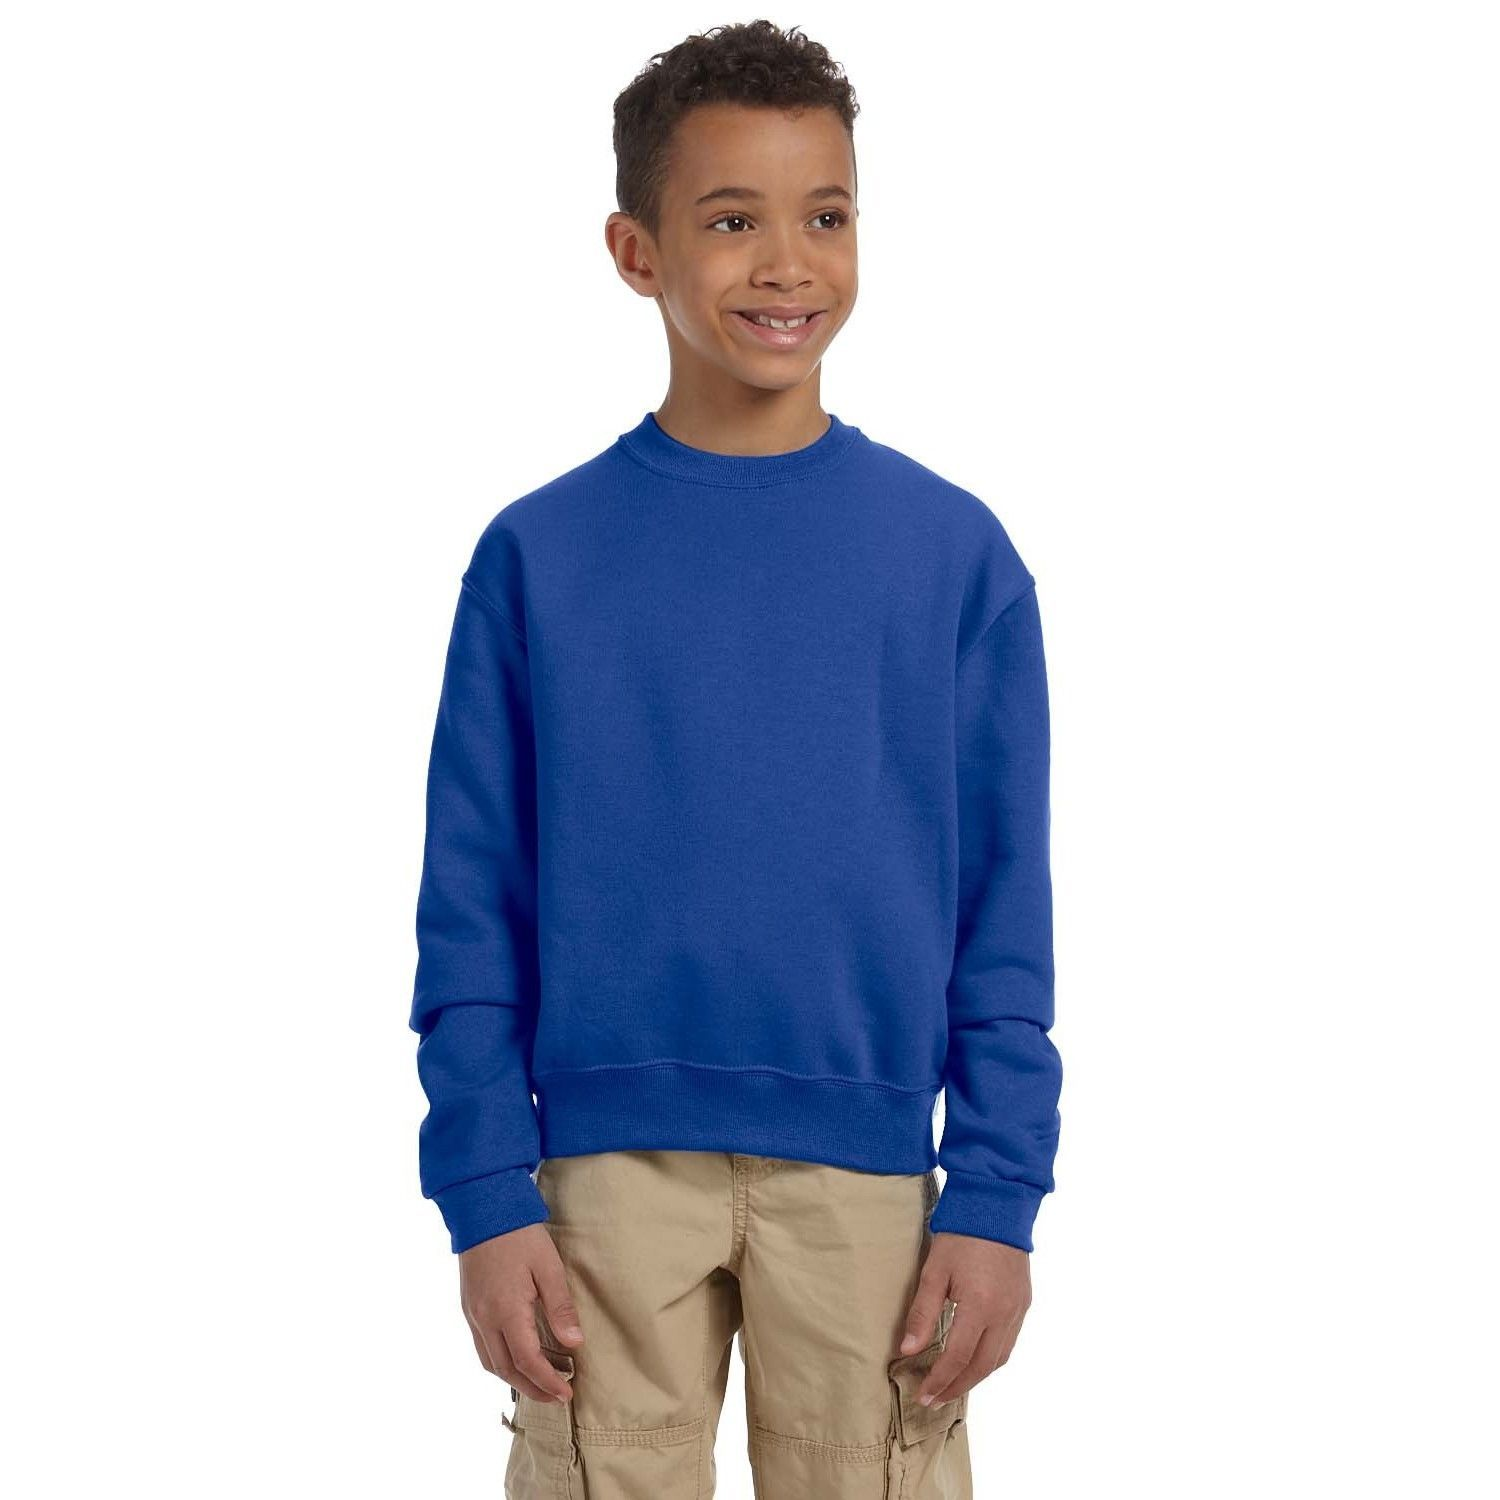 Boy's Nublend Royal Crewneck Sweatshirt